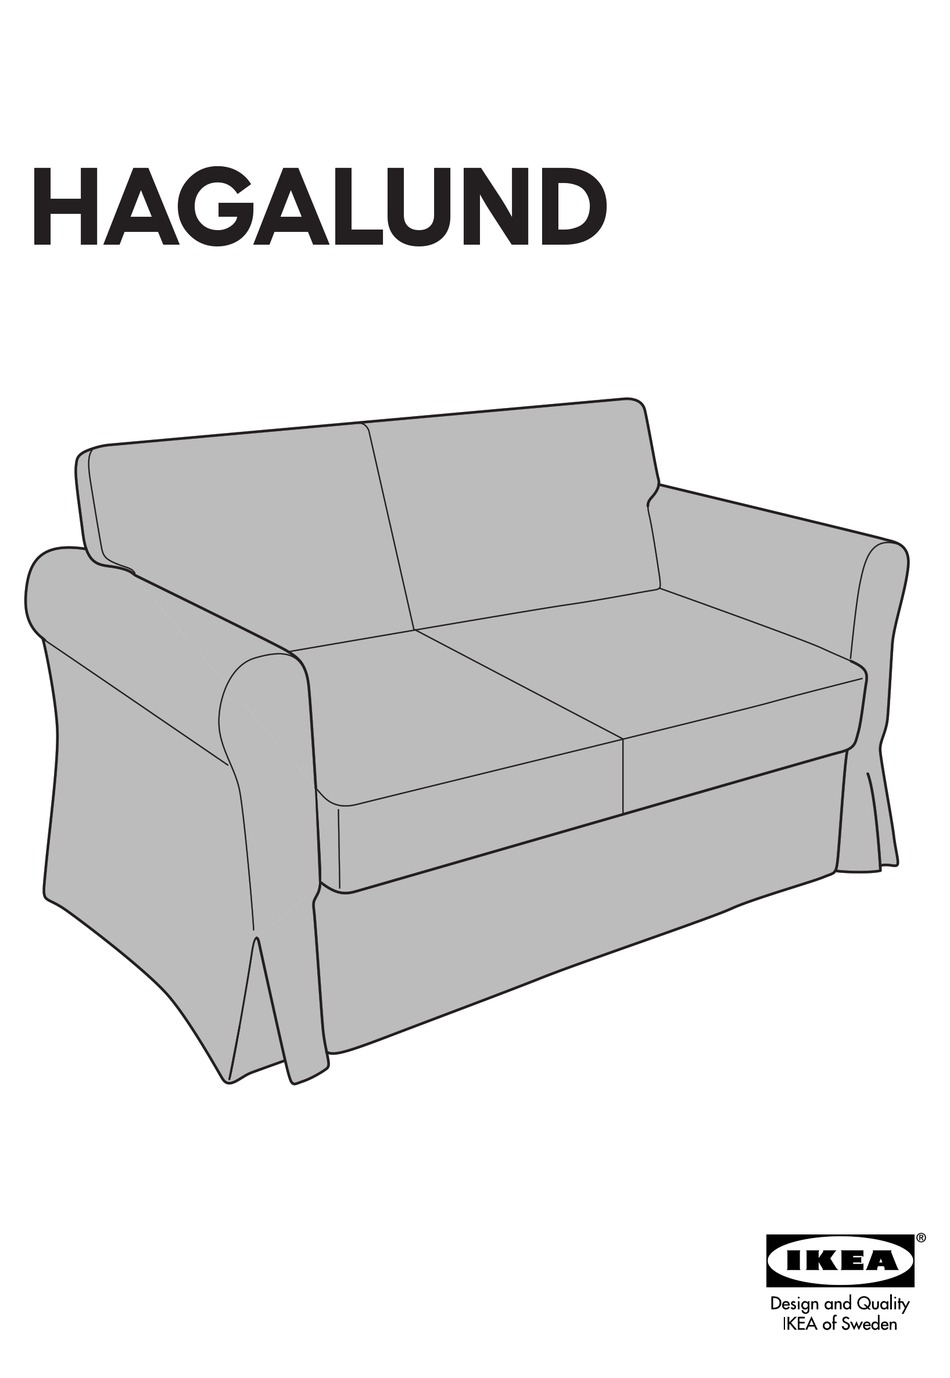 Ikea Hagalund Sofa Bed Cover Instructions Manual Pdf Download Manualslib